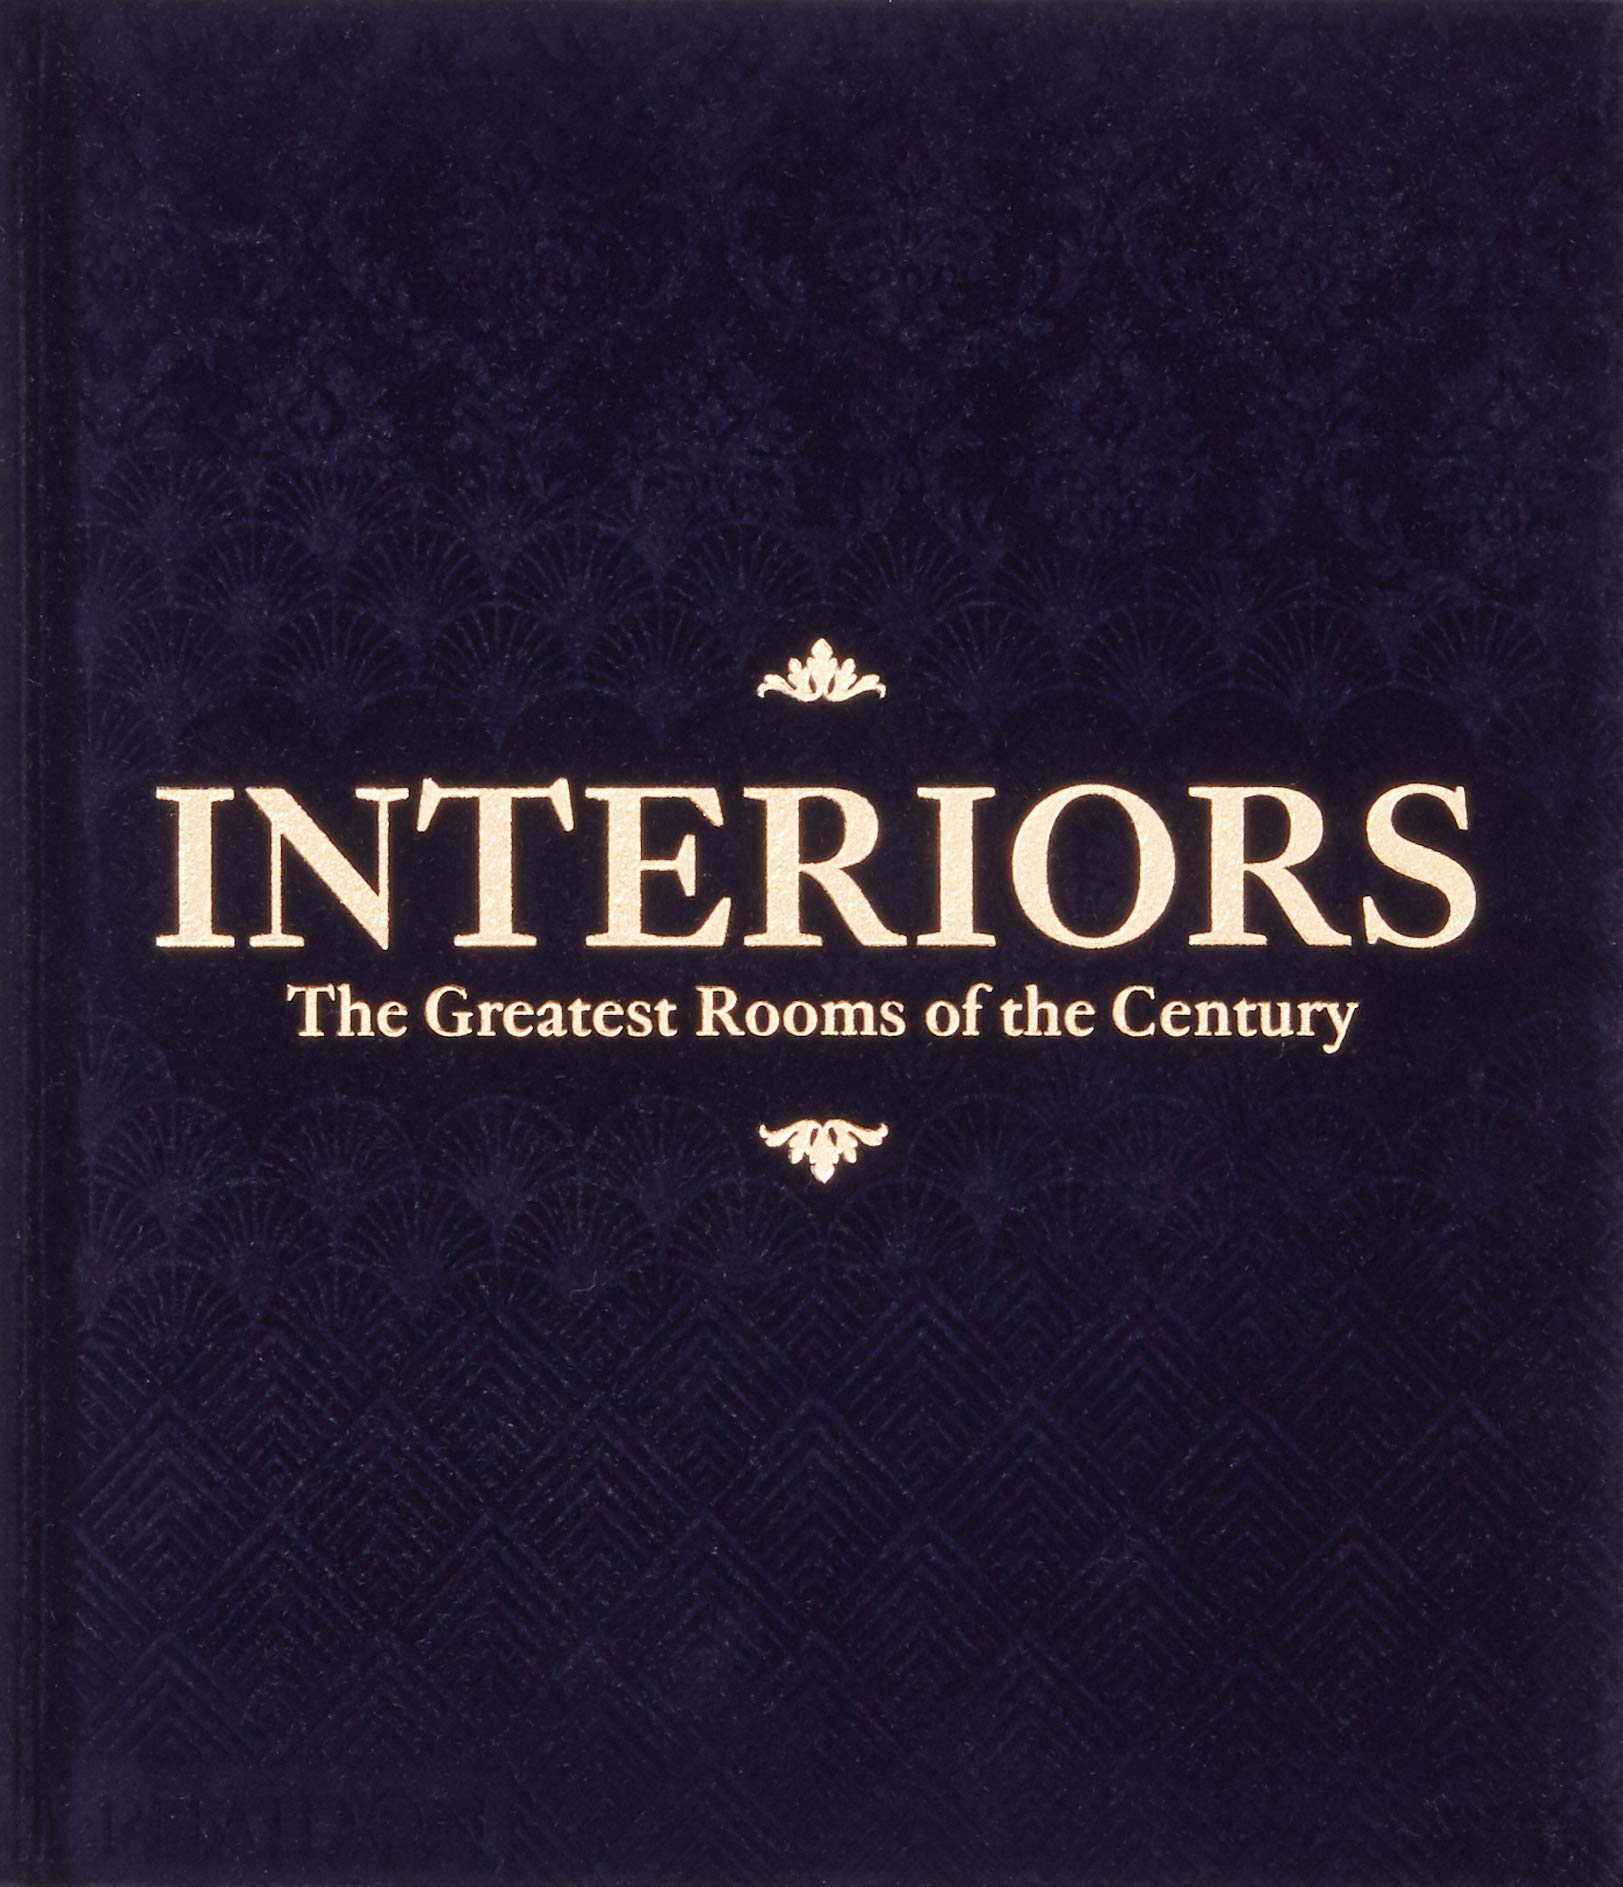 Interiors  -  The Greatest Rooms of the Century (Velvet Cover Color is Midnight Blue, 1 of 4 available colors - see below for more detail) by Phaidon Press